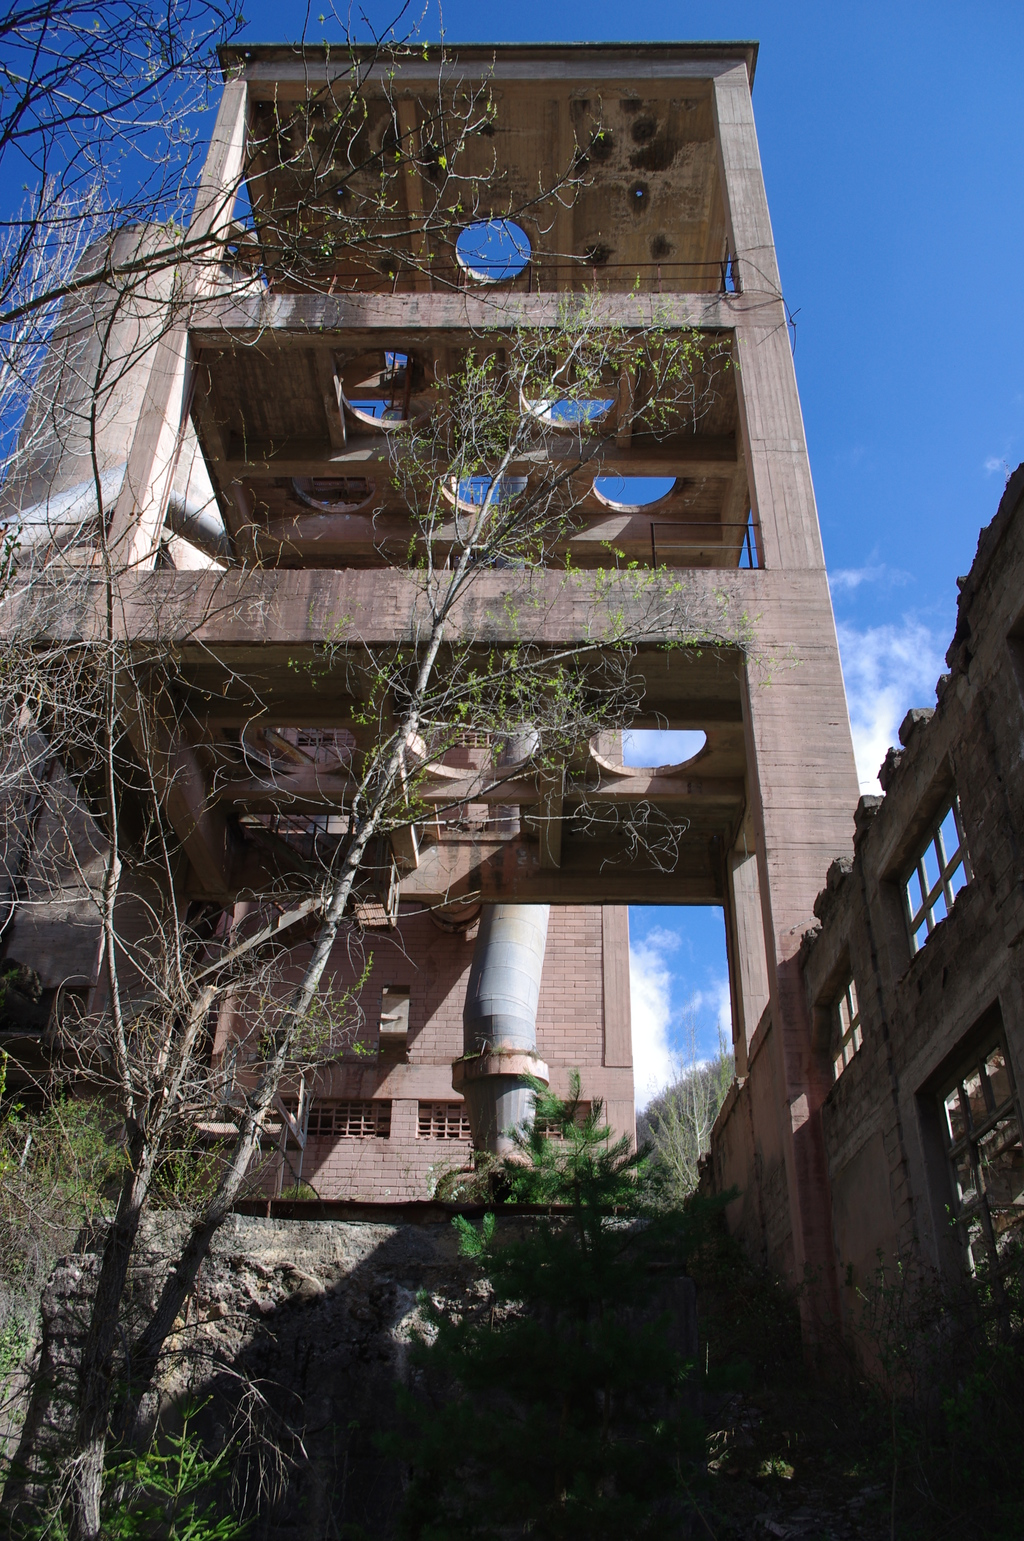 A cement plant in Spain 6